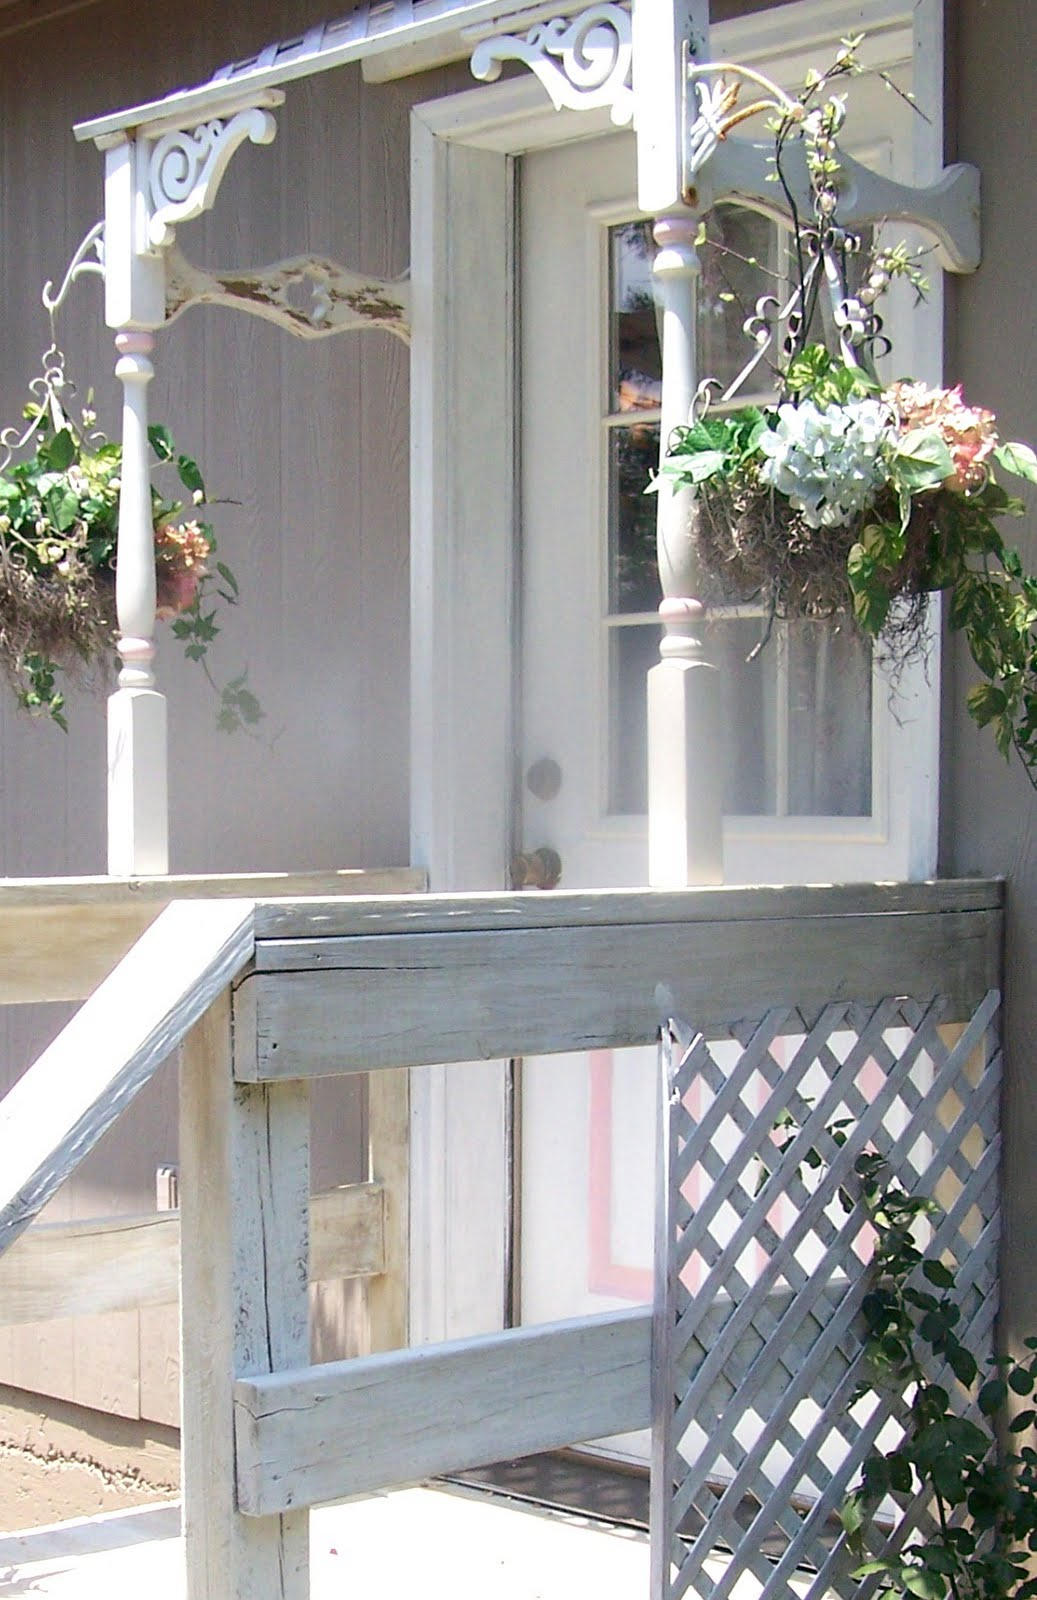 Olivia 39 s romantic home tiny chic porch - How warm does it have to be to paint outside ...